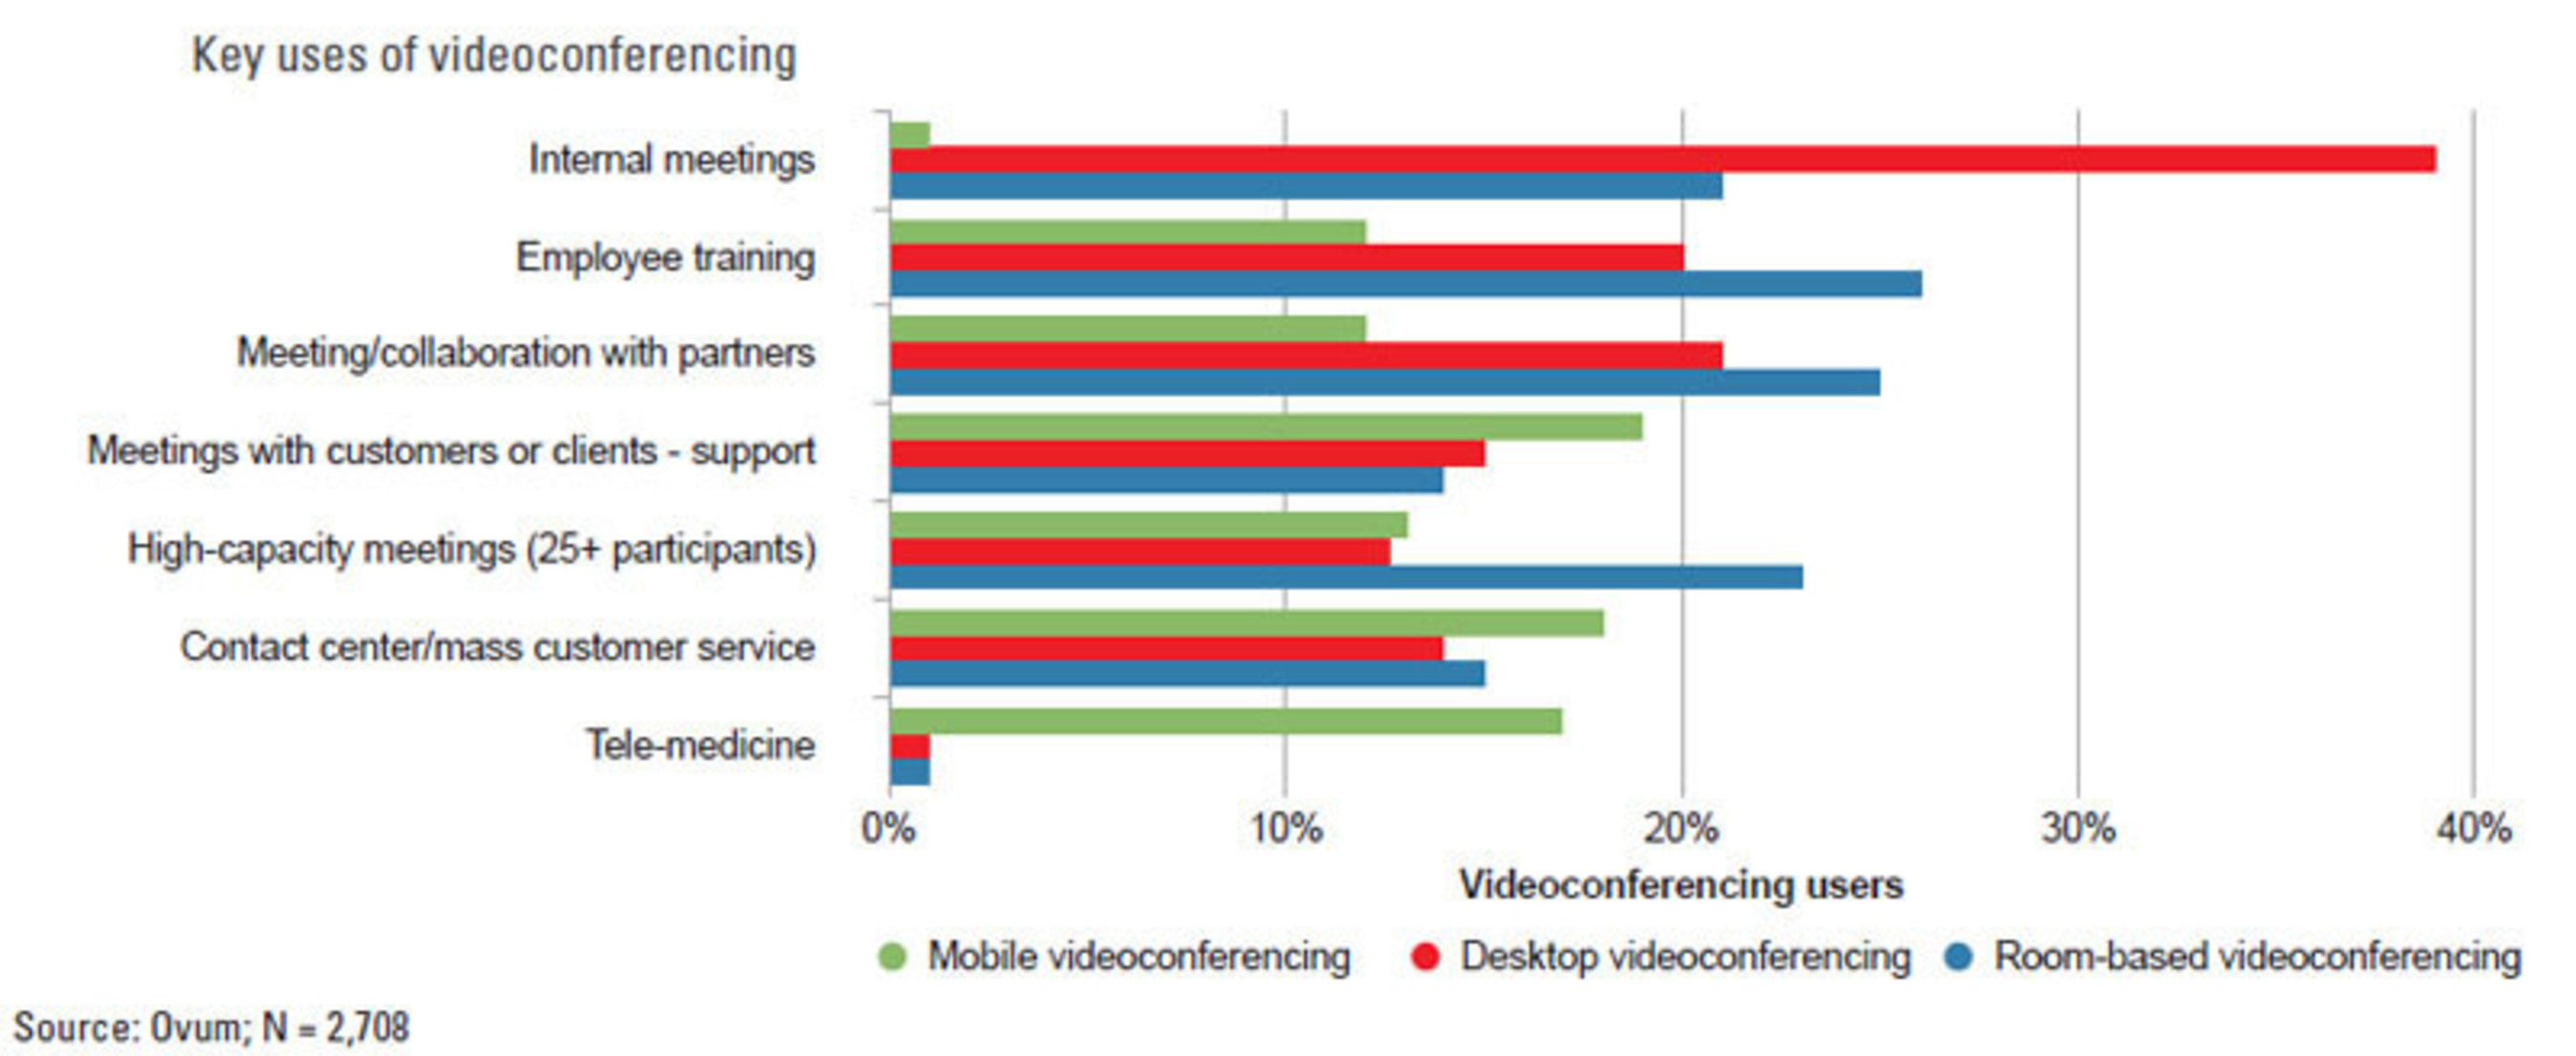 Key uses of videoconferencing